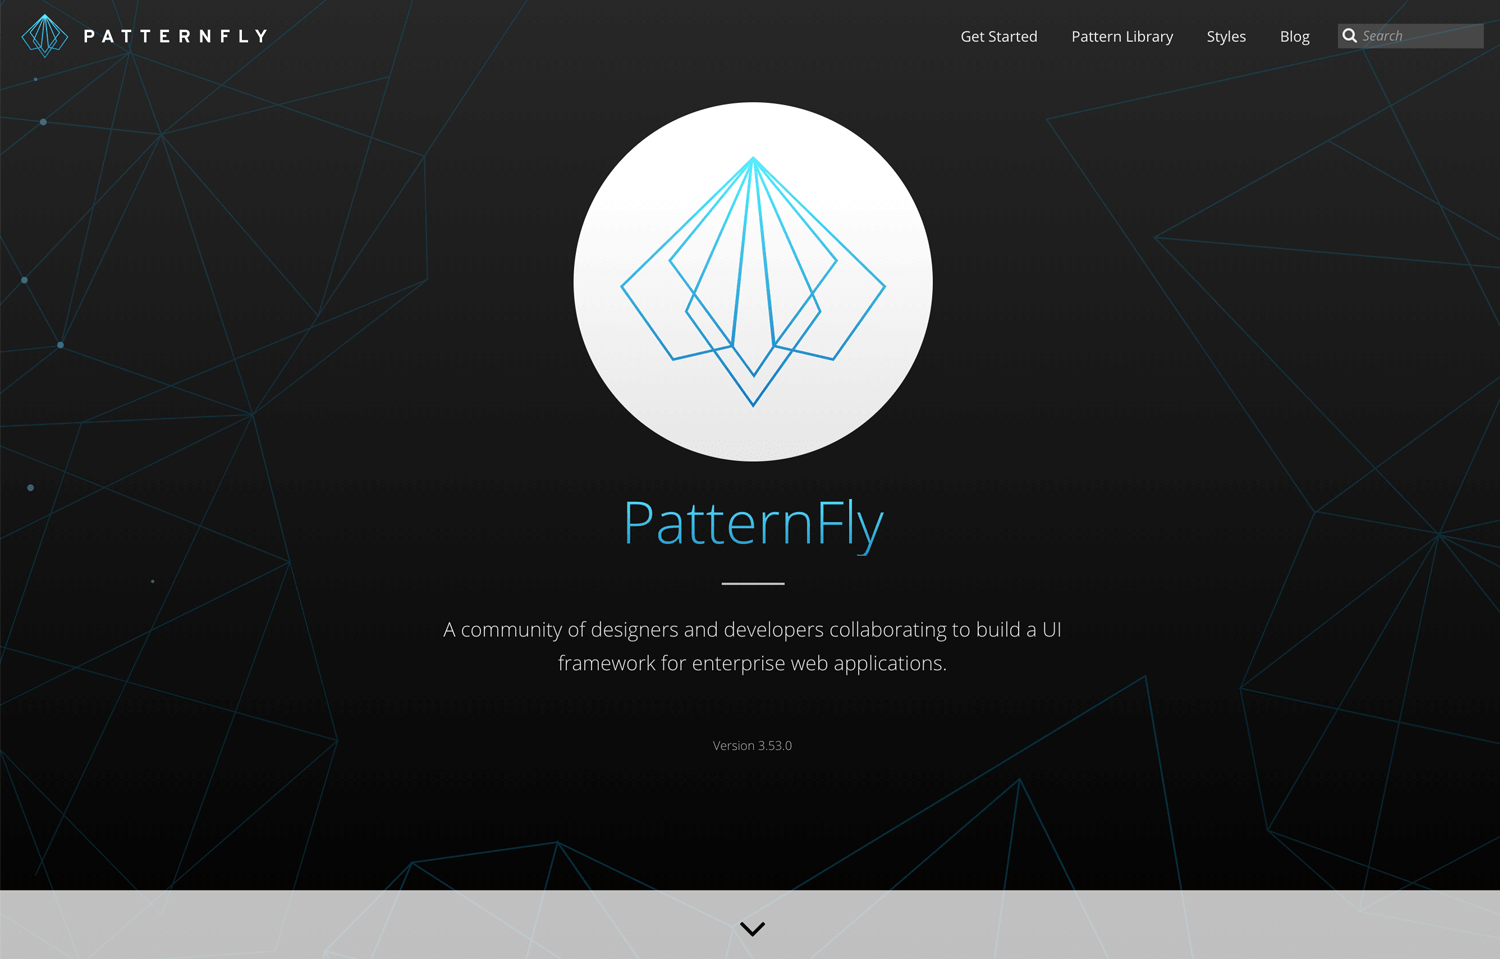 patternfly as ui pattern library for designers